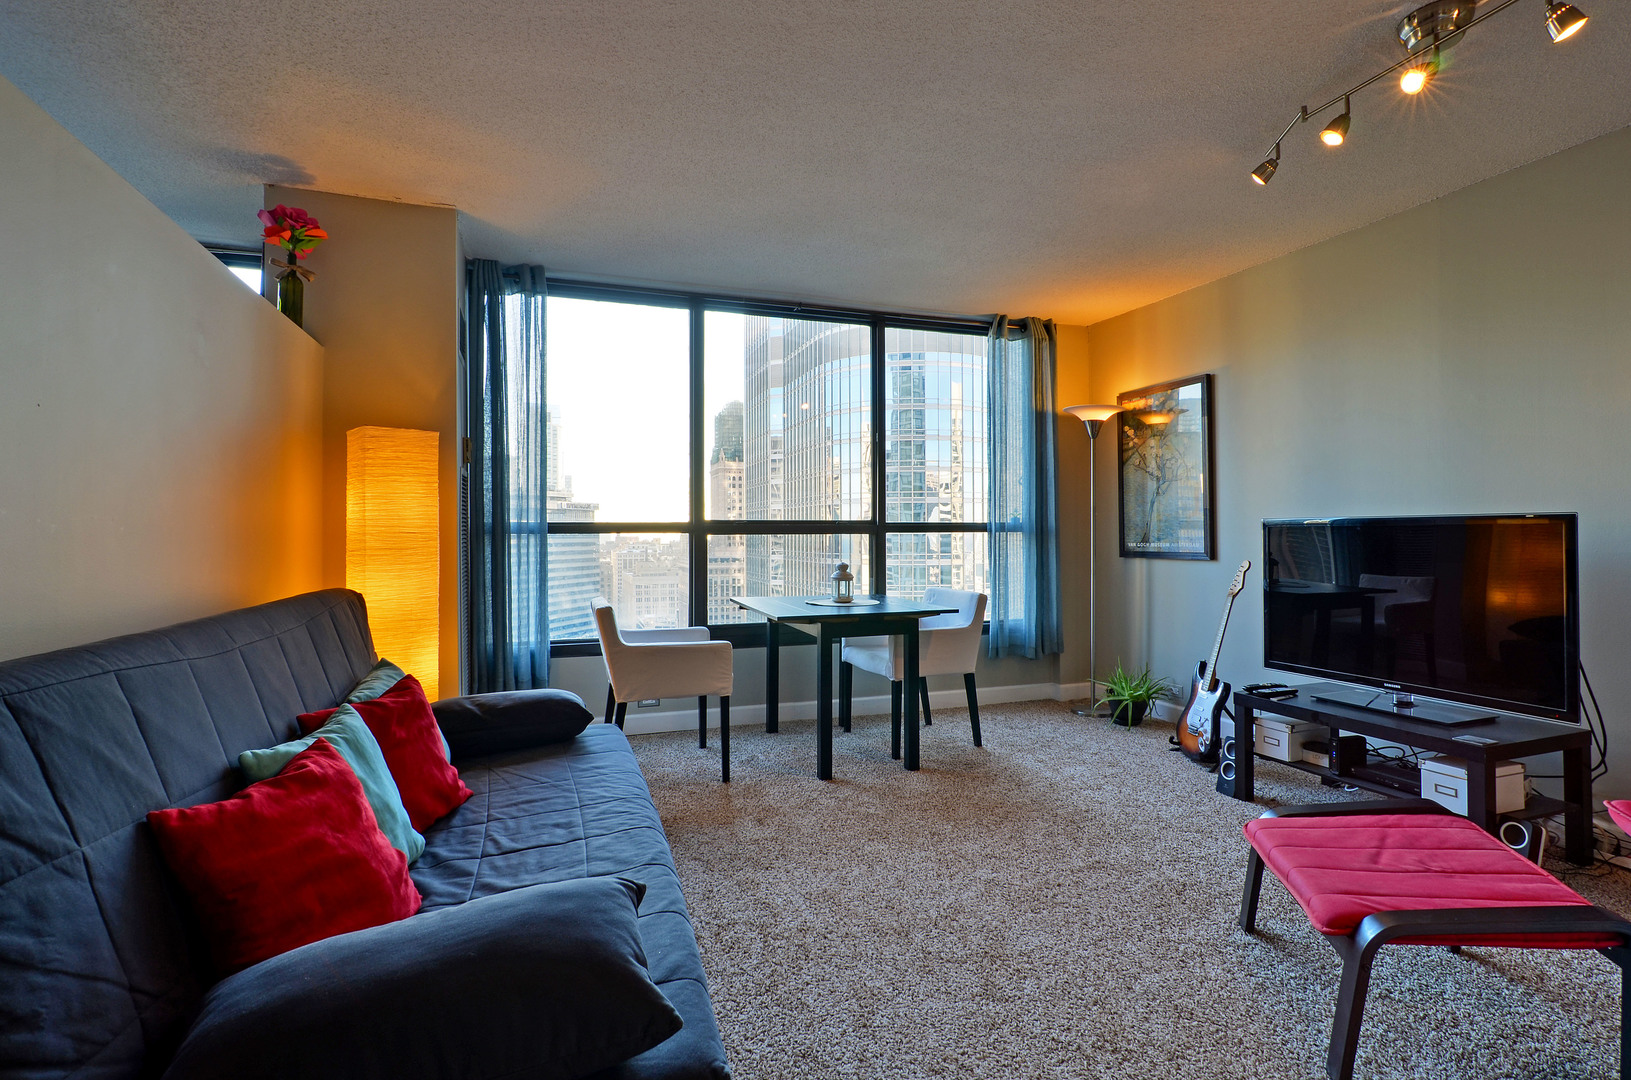 405 NORTH WABASH AVENUE #3106, CHICAGO, IL 60611  Photo 2